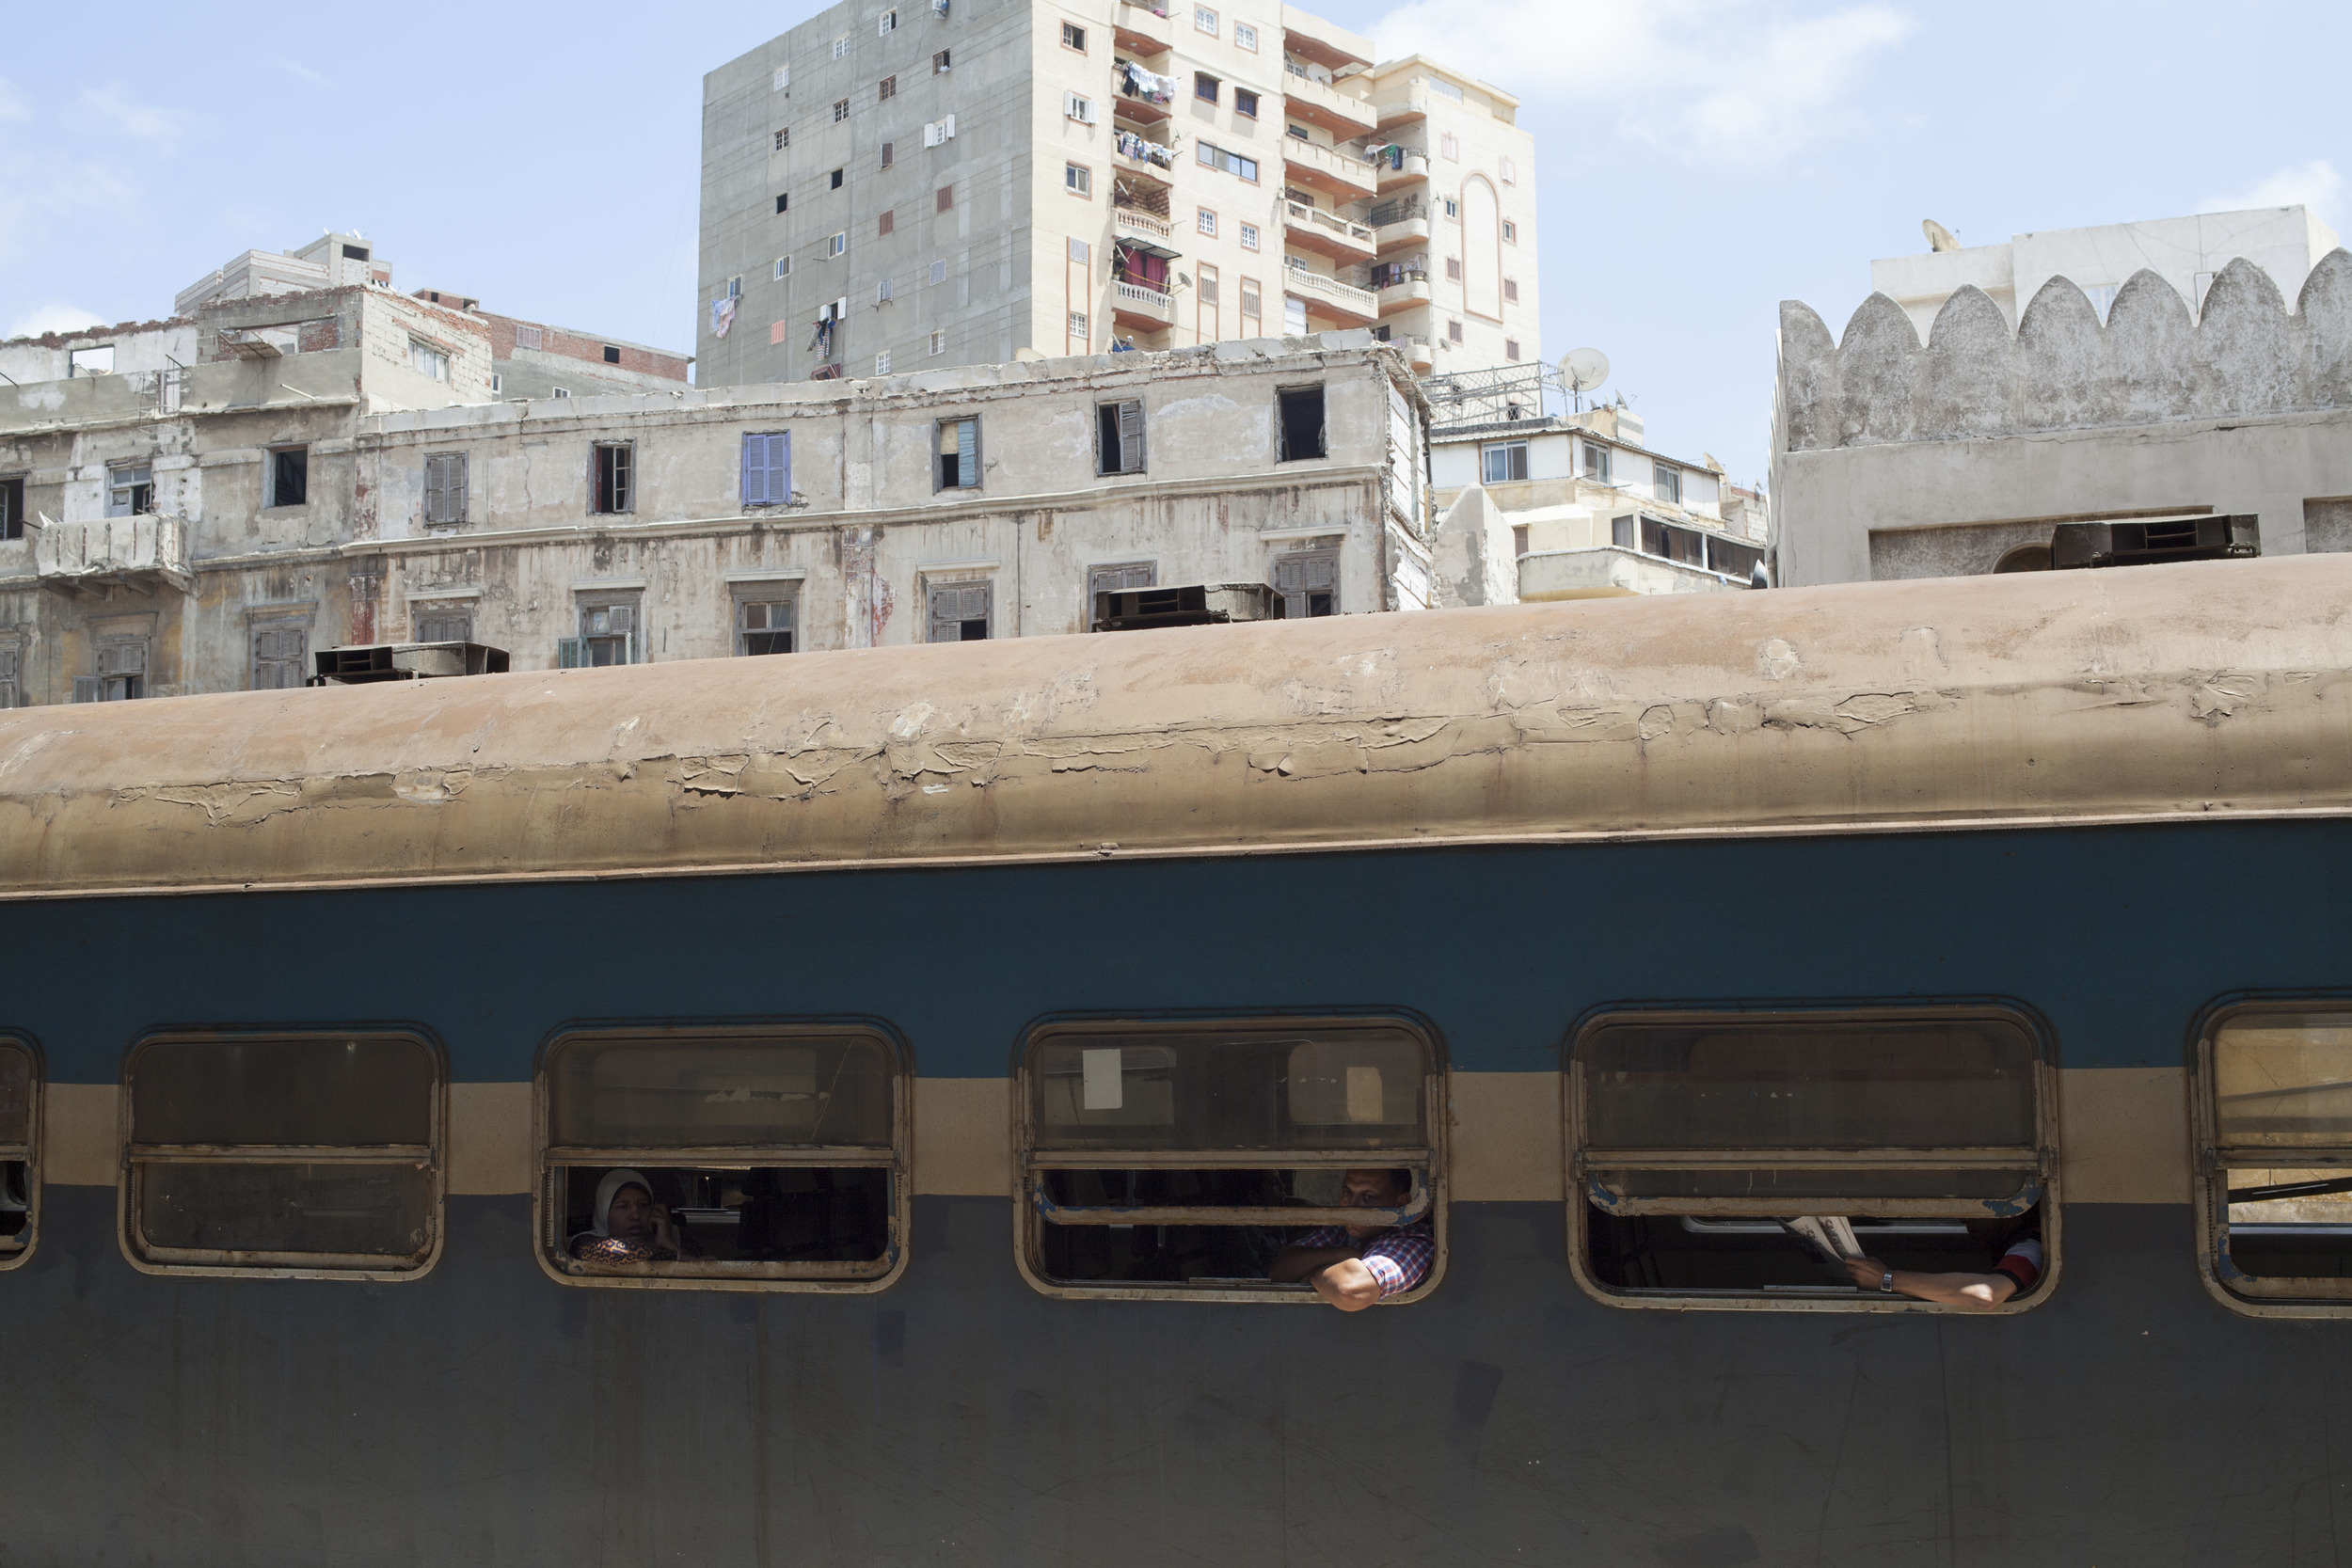 People wait for a train to depart in Alexandria Central.